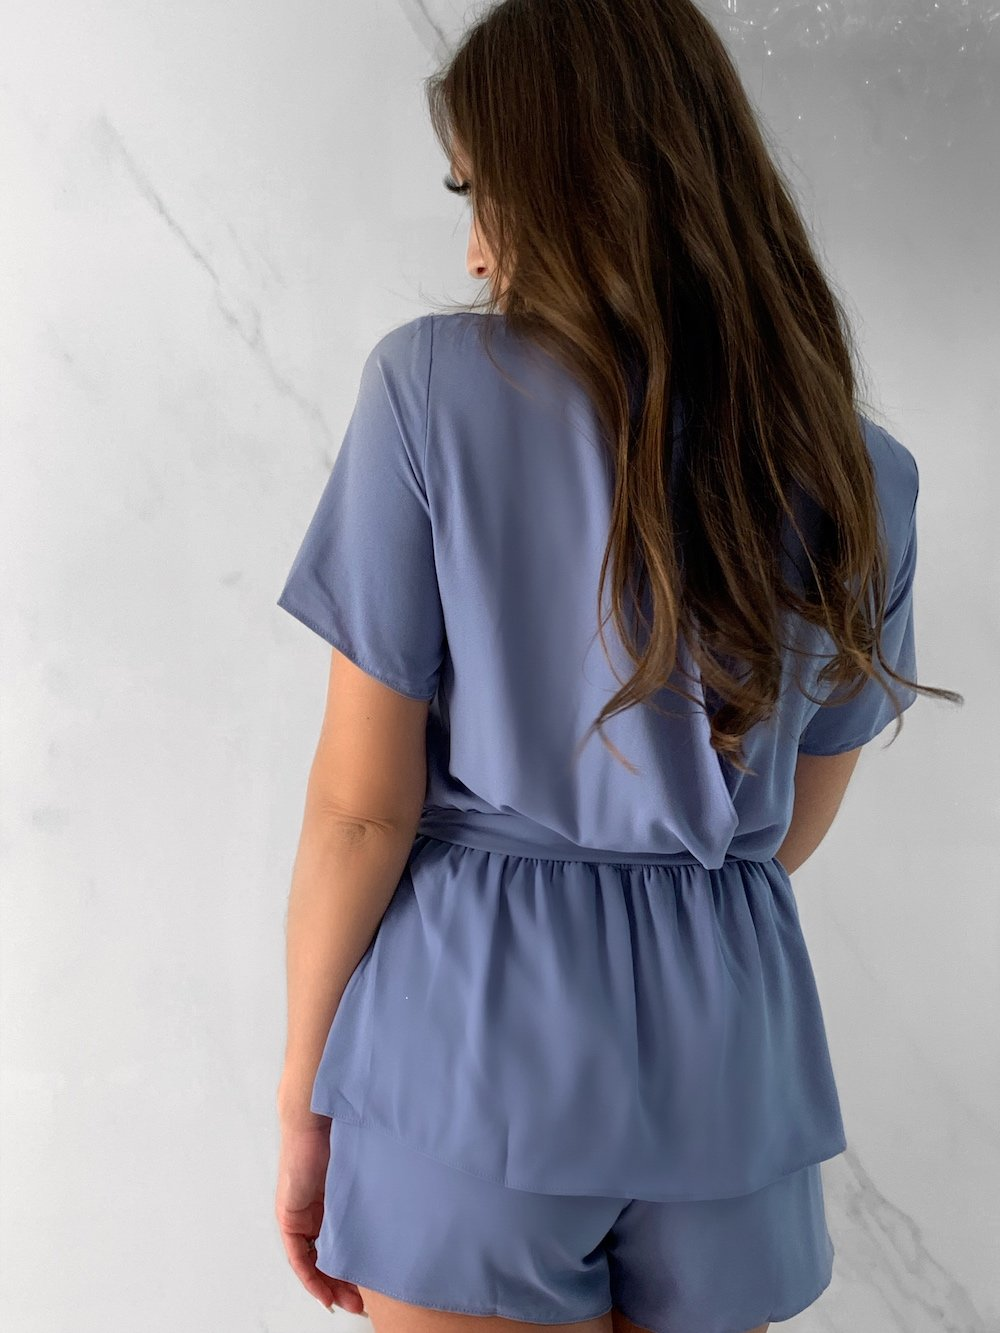 Pelia Onesie, Women's Blue Jumpsuits